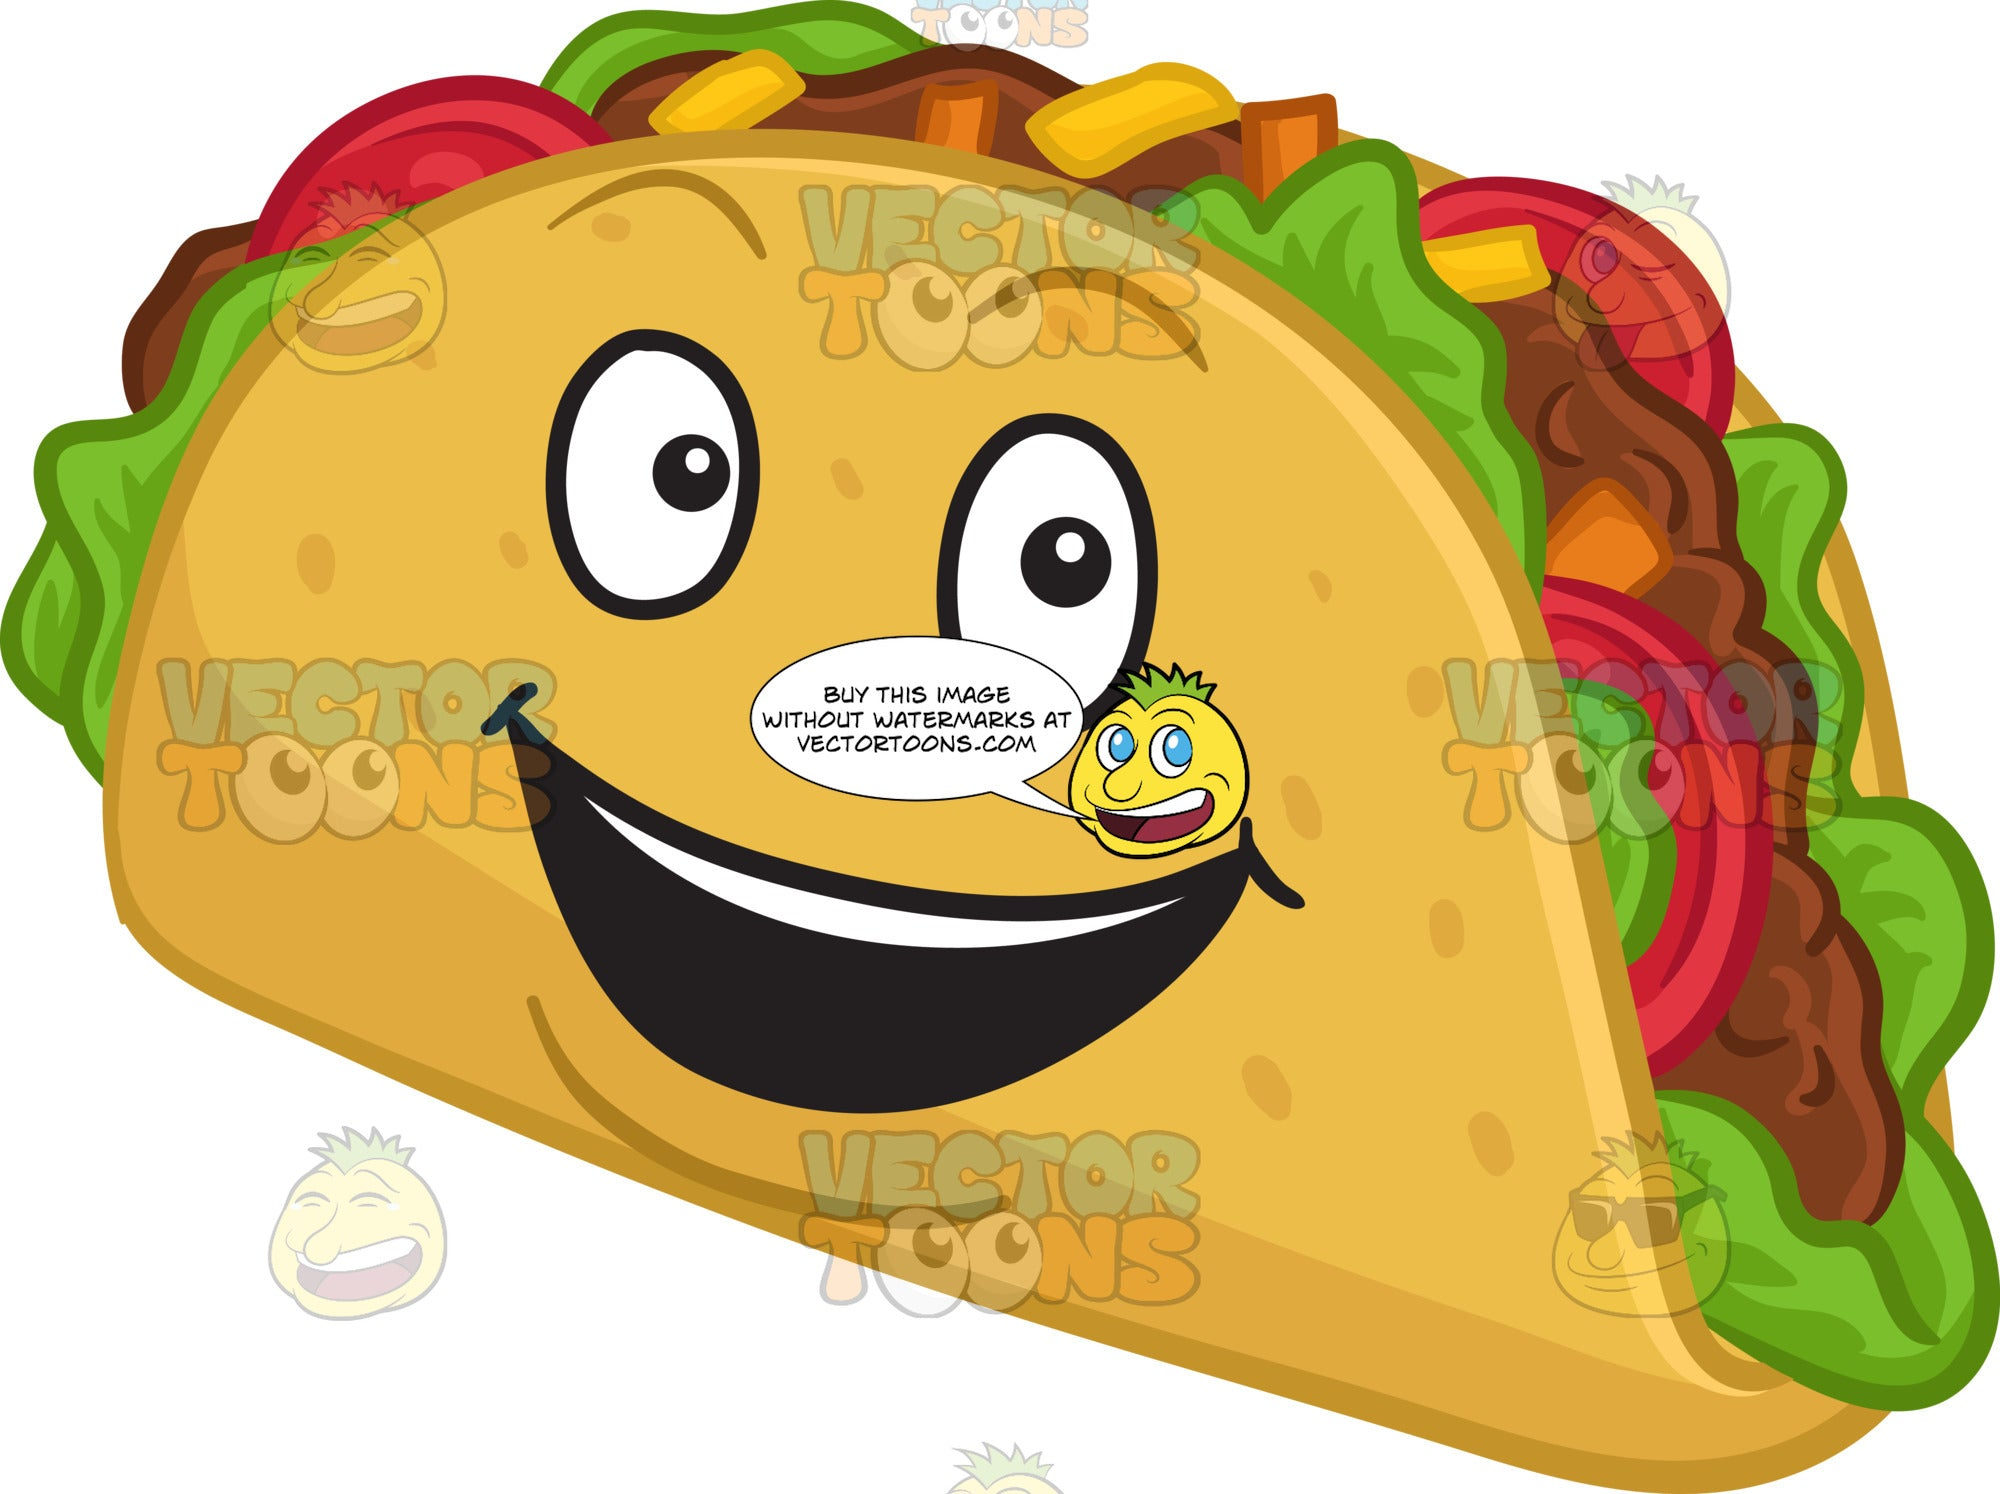 A Very Happy Hard Shell Taco Snack